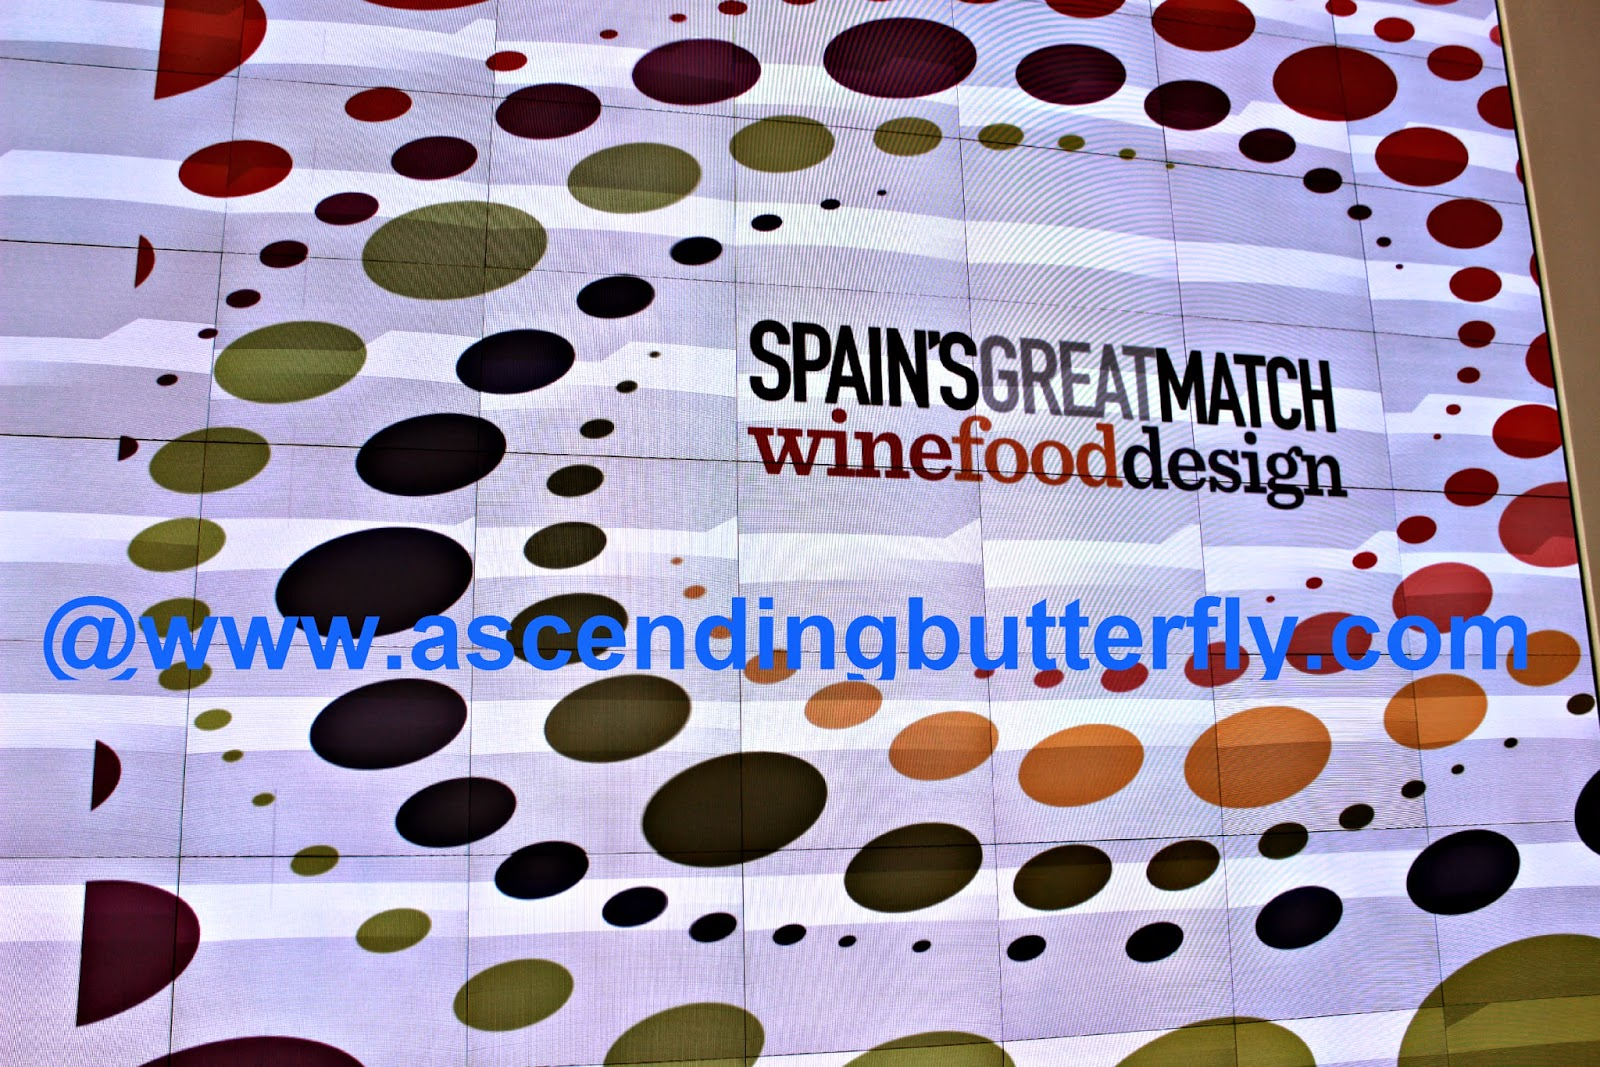 Spain's Great Match Wine Food Design